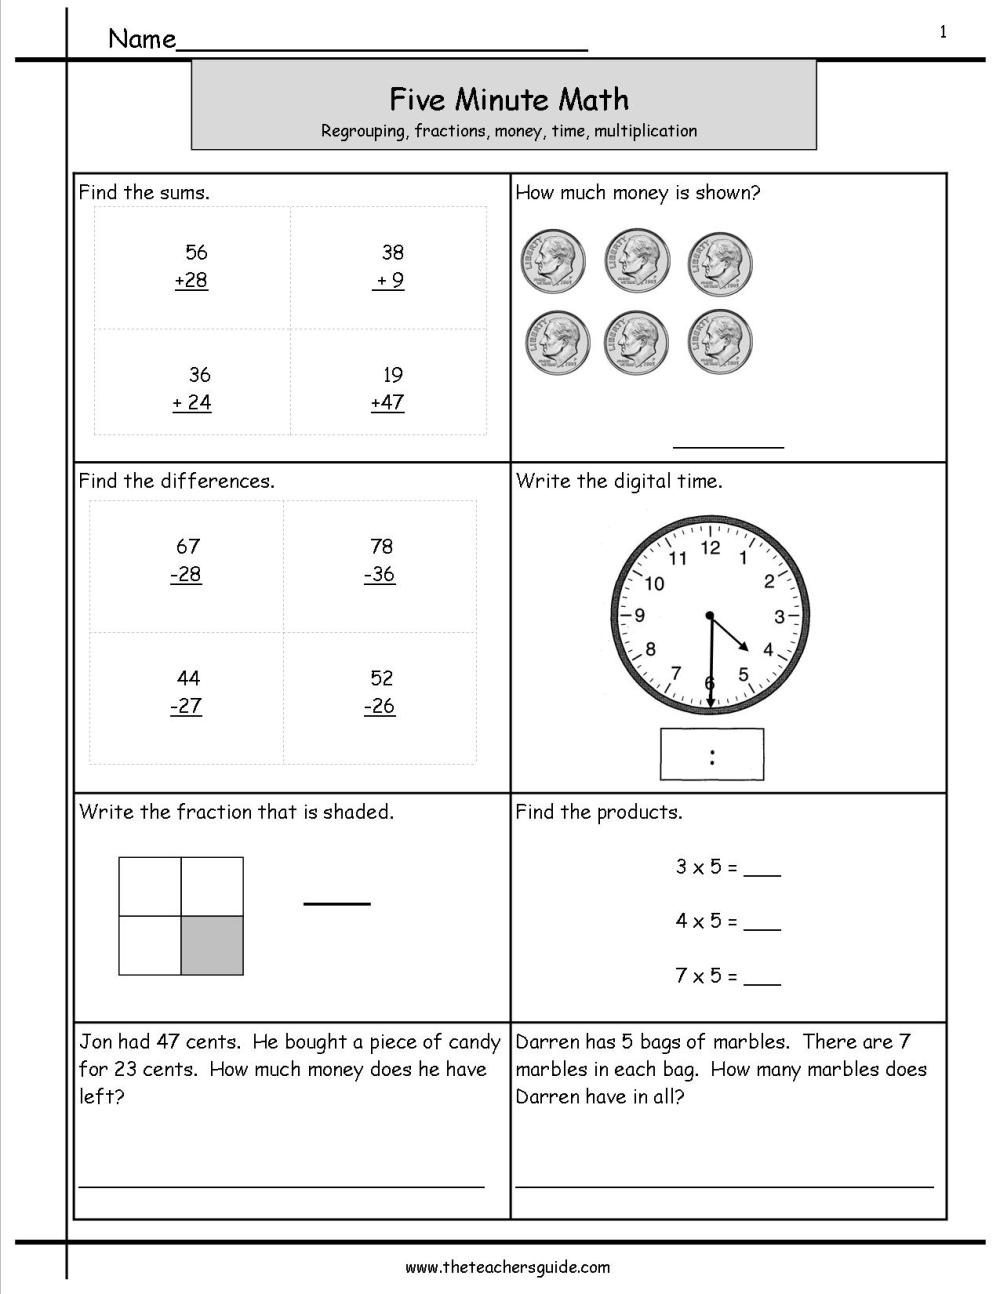 medium resolution of Five Minute Math Review Worksheets from The Teacher's Guide